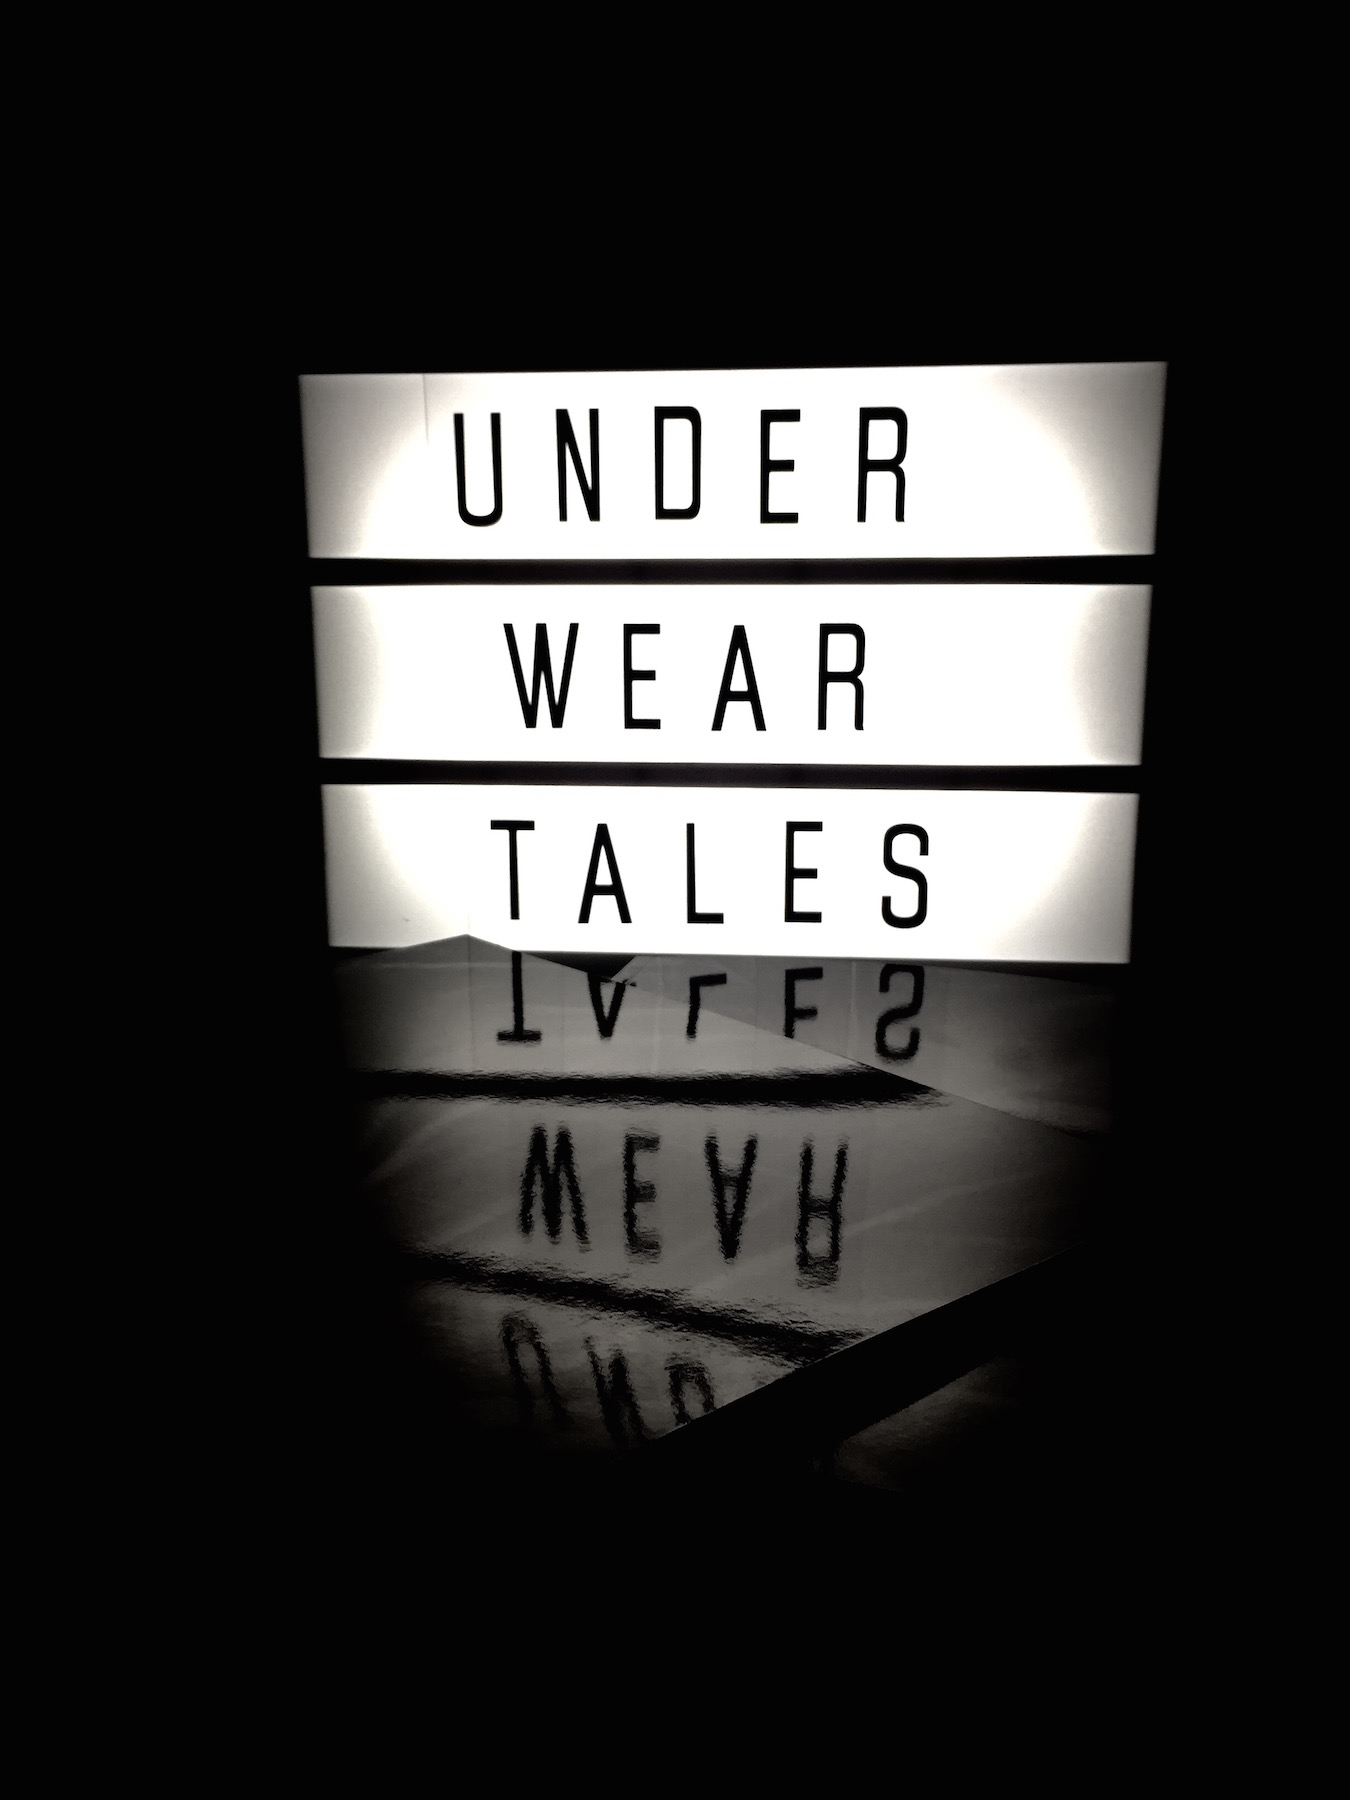 Underwear Tales Interview